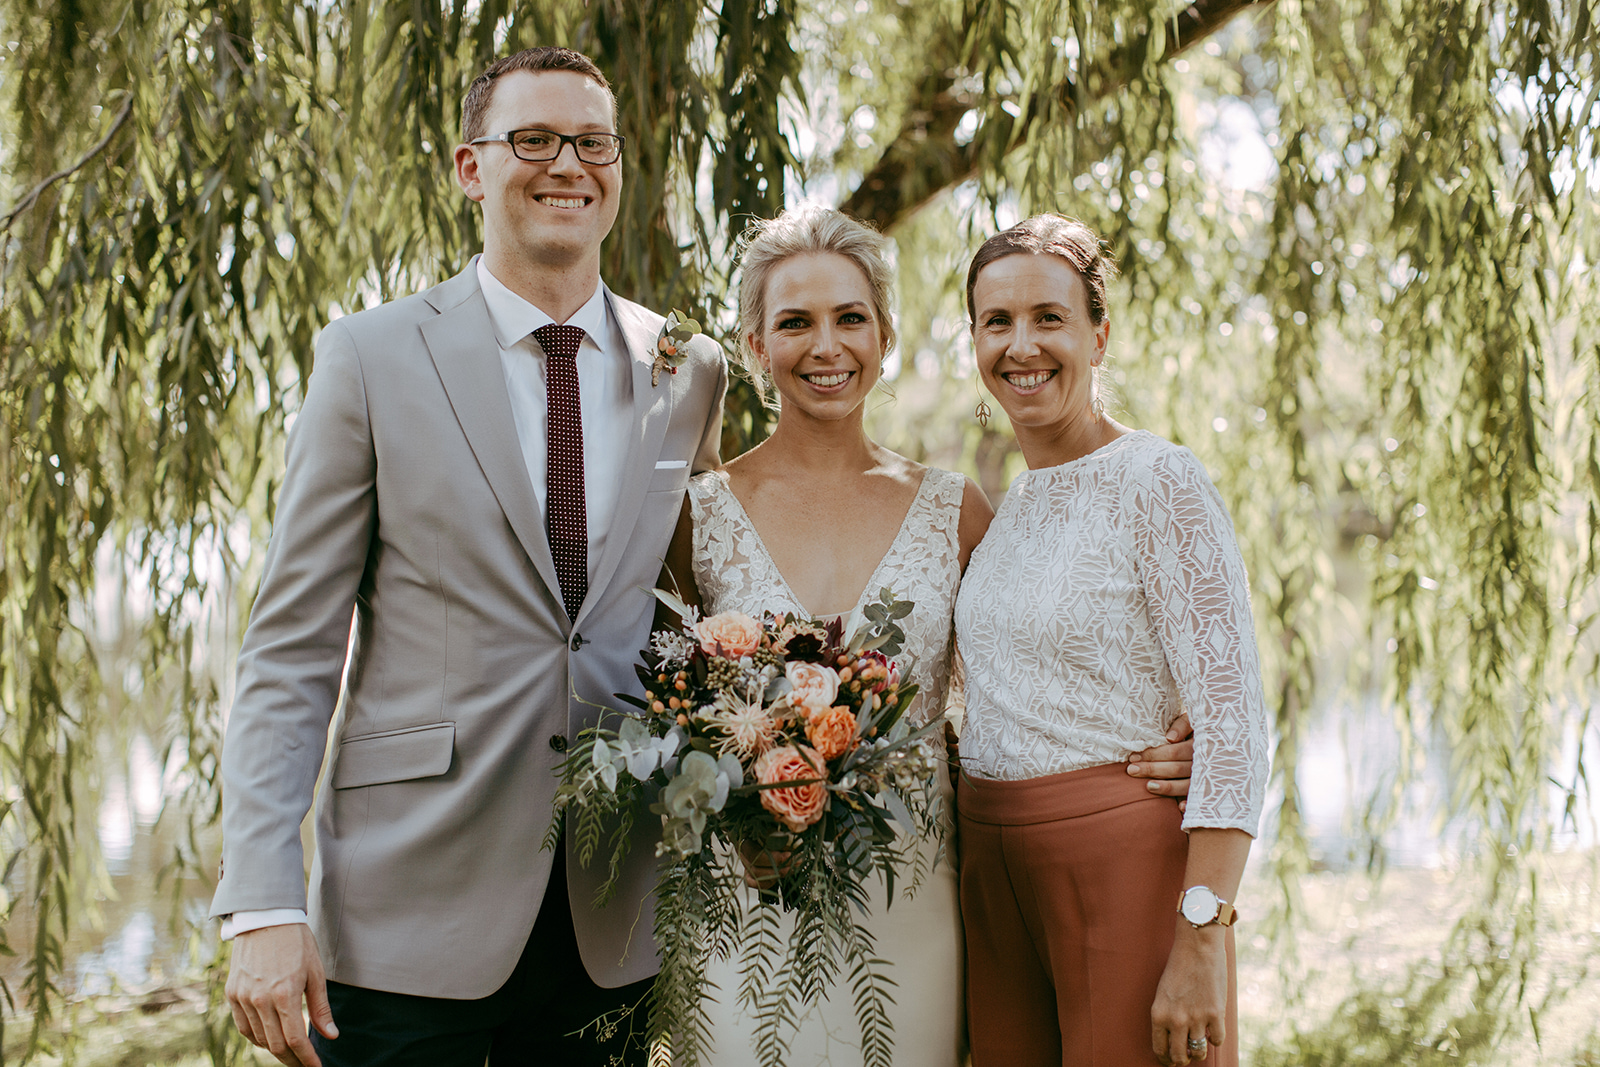 Sydney wedding celebrant Andrea Calodolce with bride and groom after ceremony